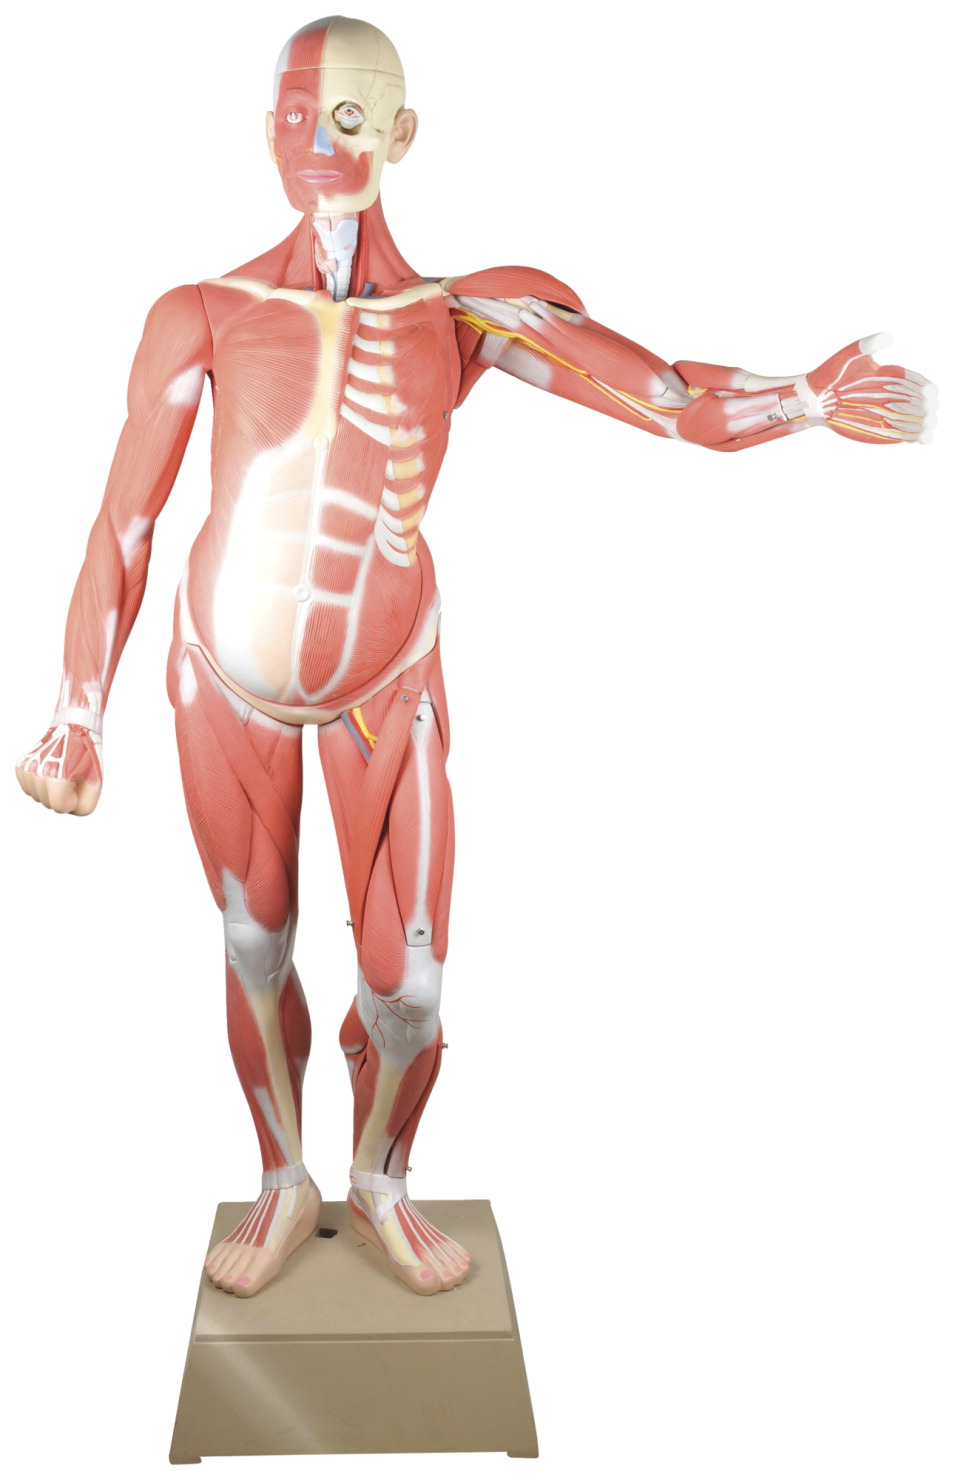 EISCO Muscular Human Anatomy Model